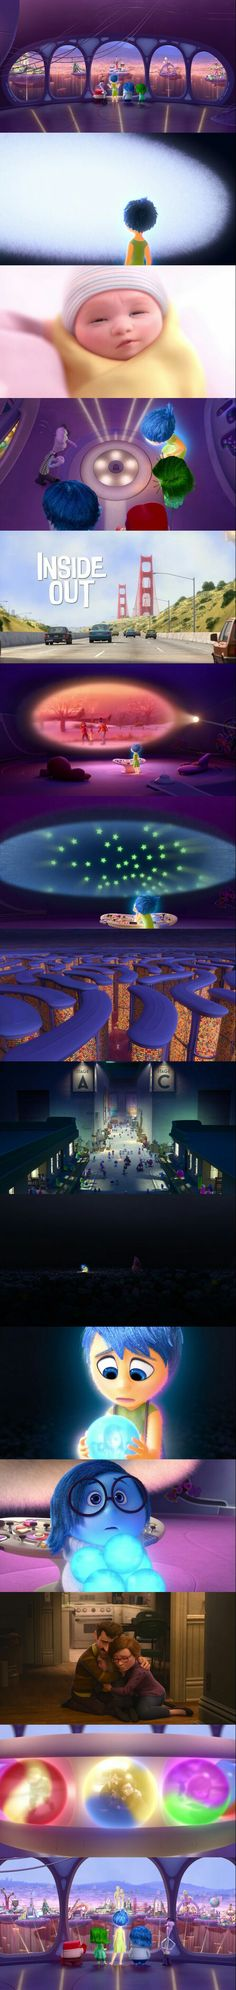 Inside Out (2015) Directed by Pete Docter.